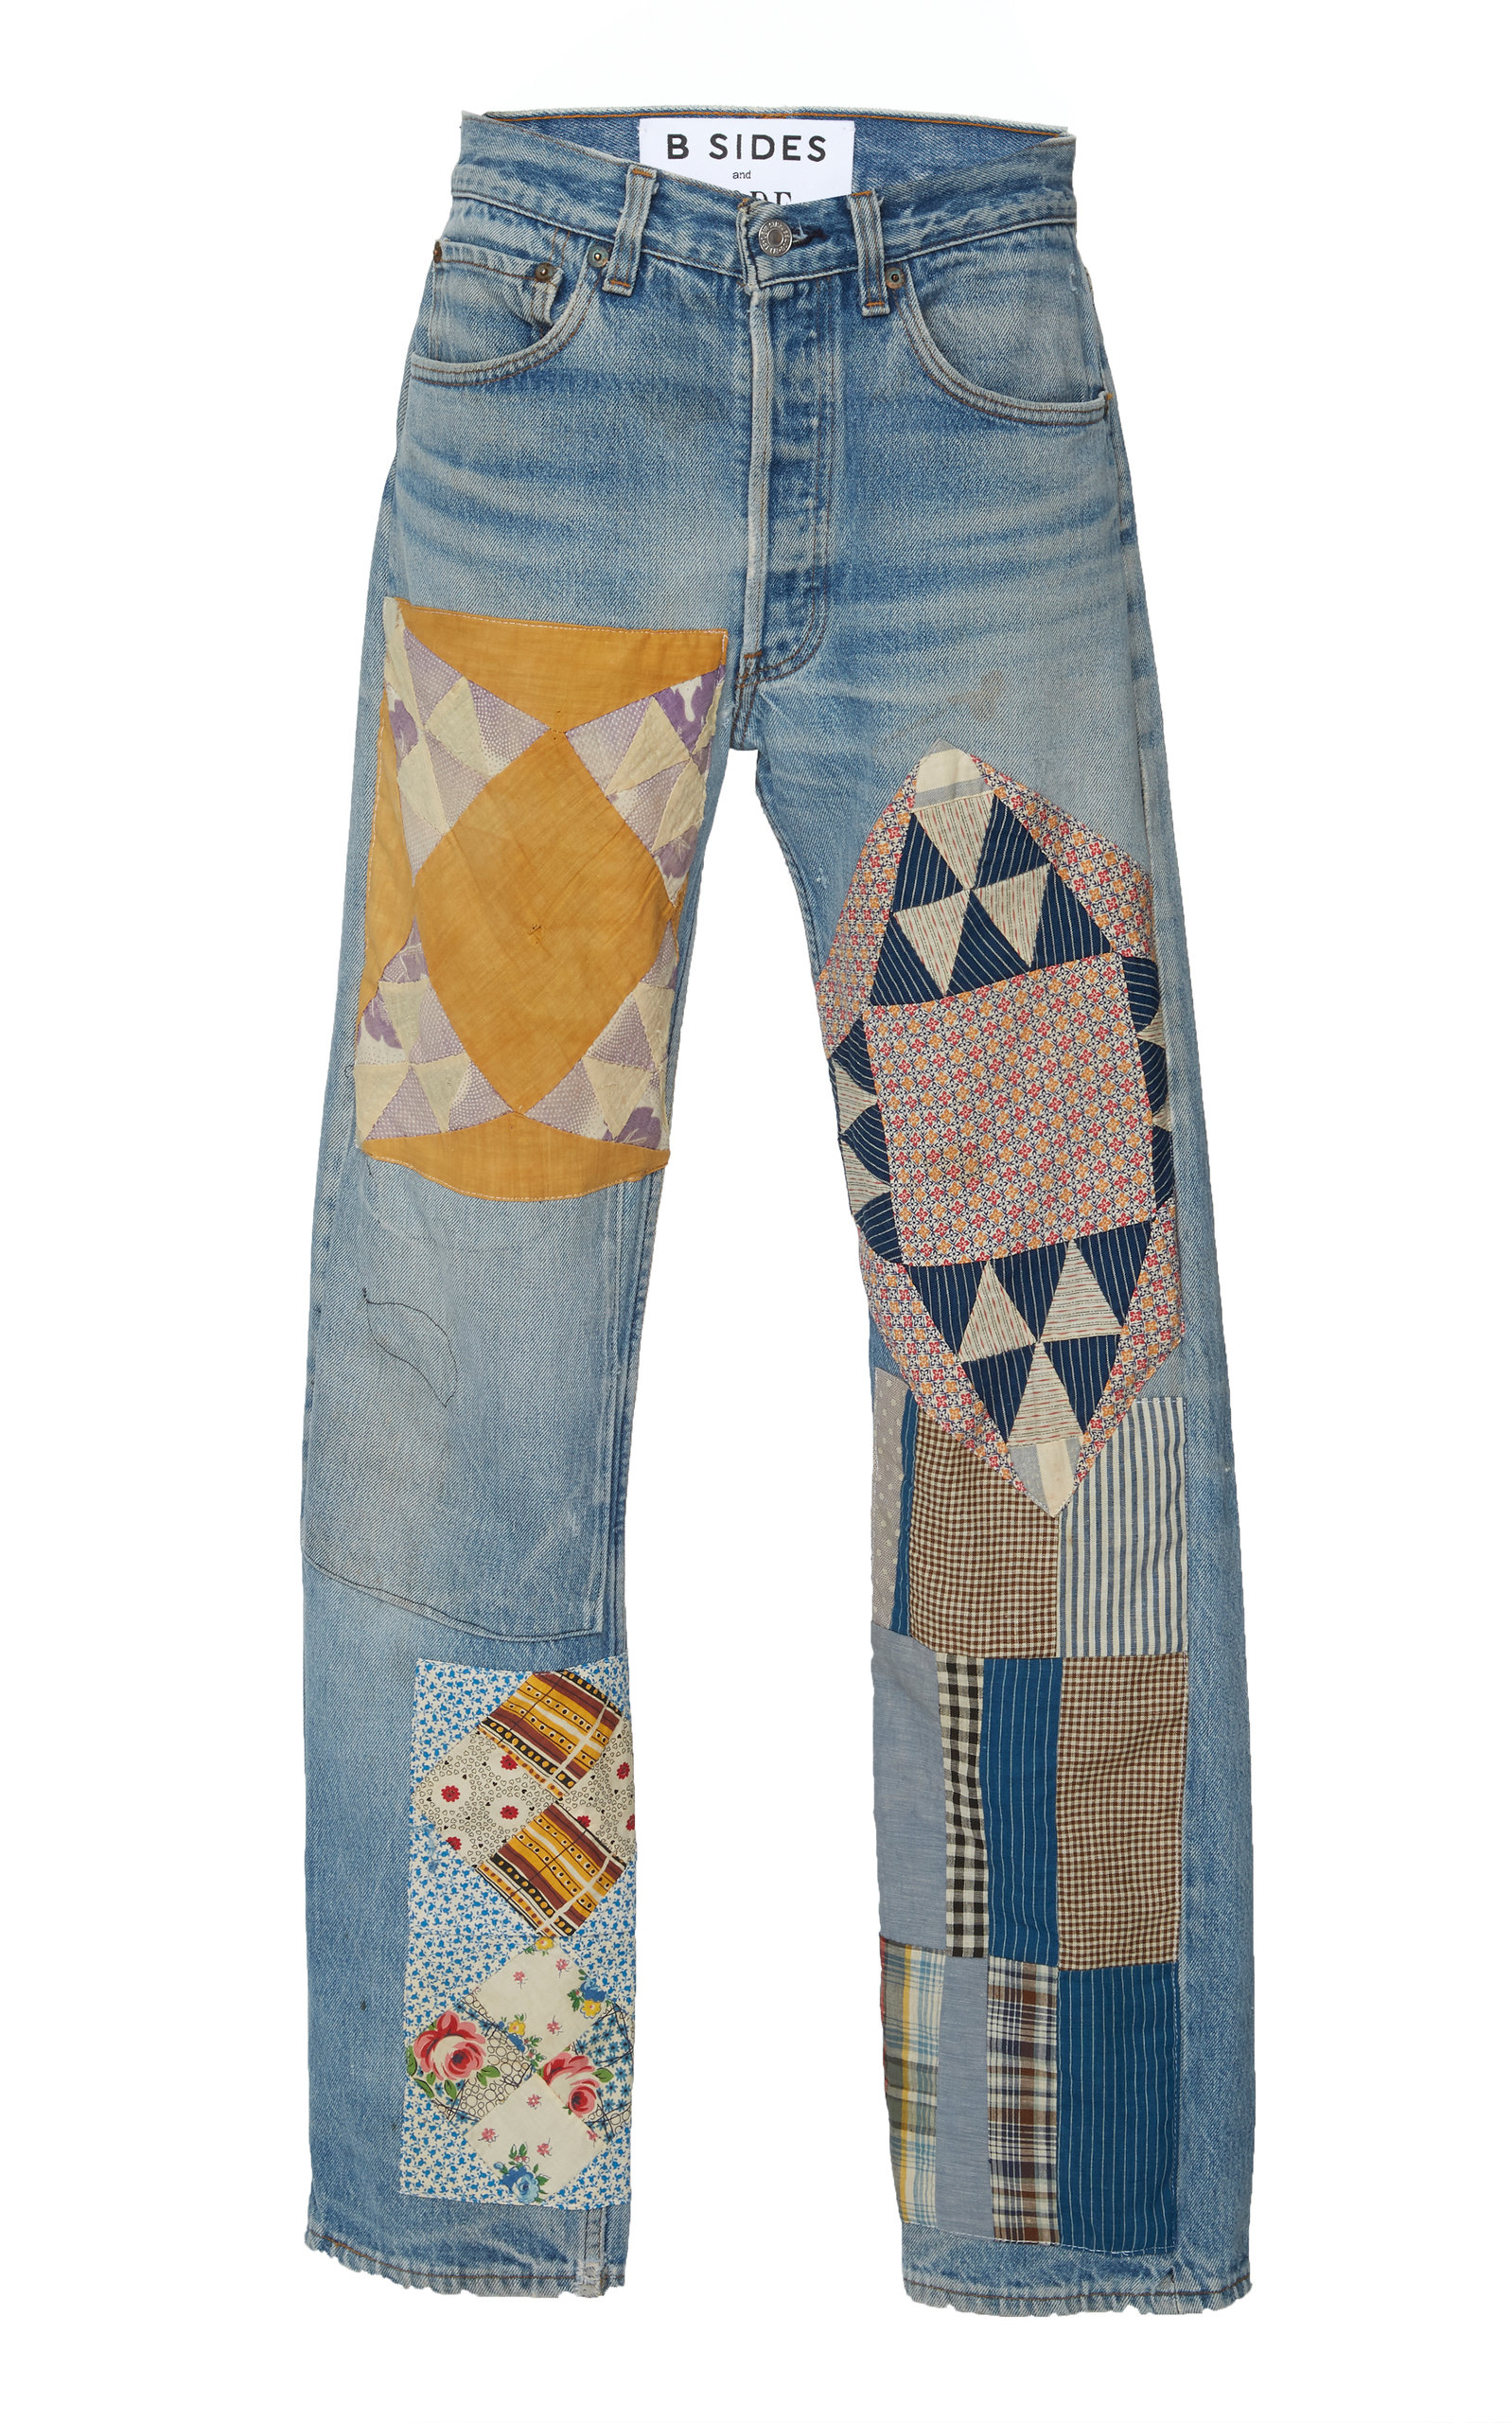 Pretty Patch Jeans Best Jeans Altering Jeans Crop Top Outfits